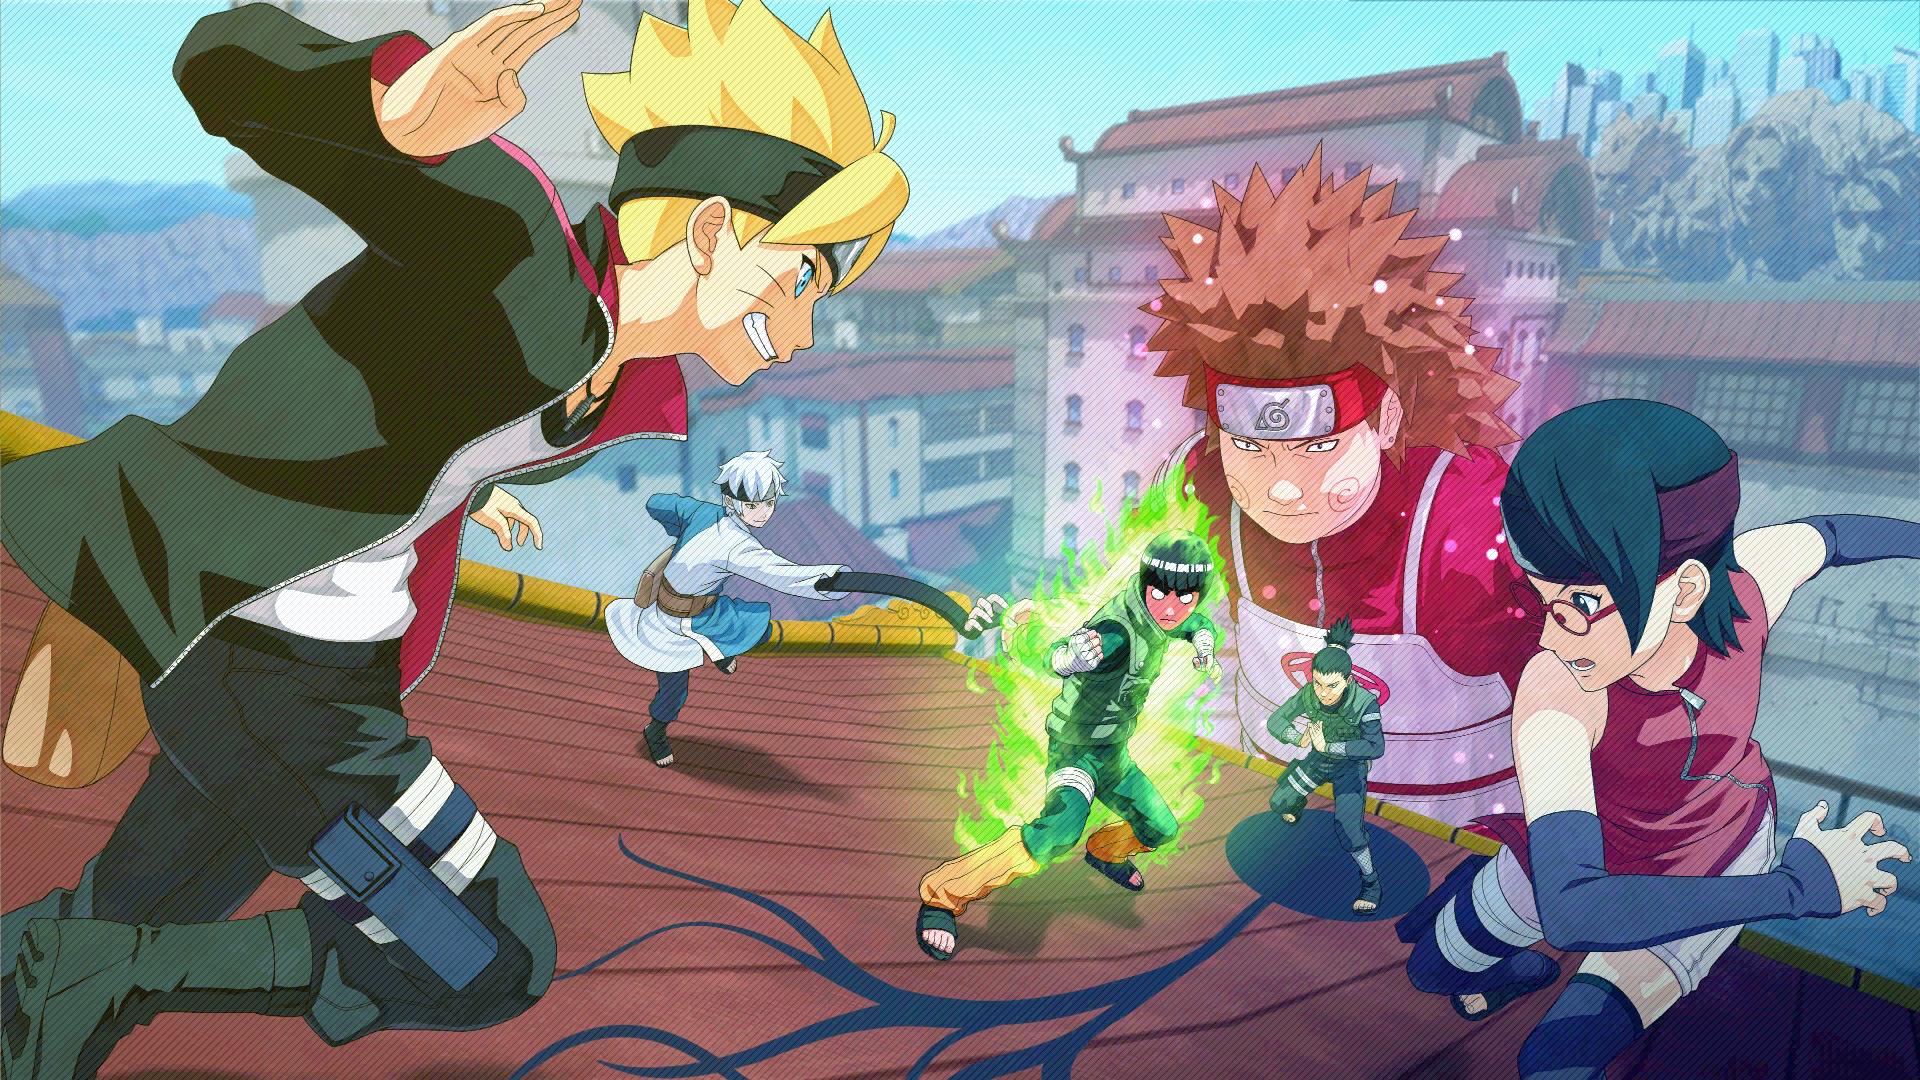 Boruto, Mitsuki, Sarada vs Choji, Lee, Shikamaru Loading Screen Art (Naruto to Boruto Shinobi Striker)